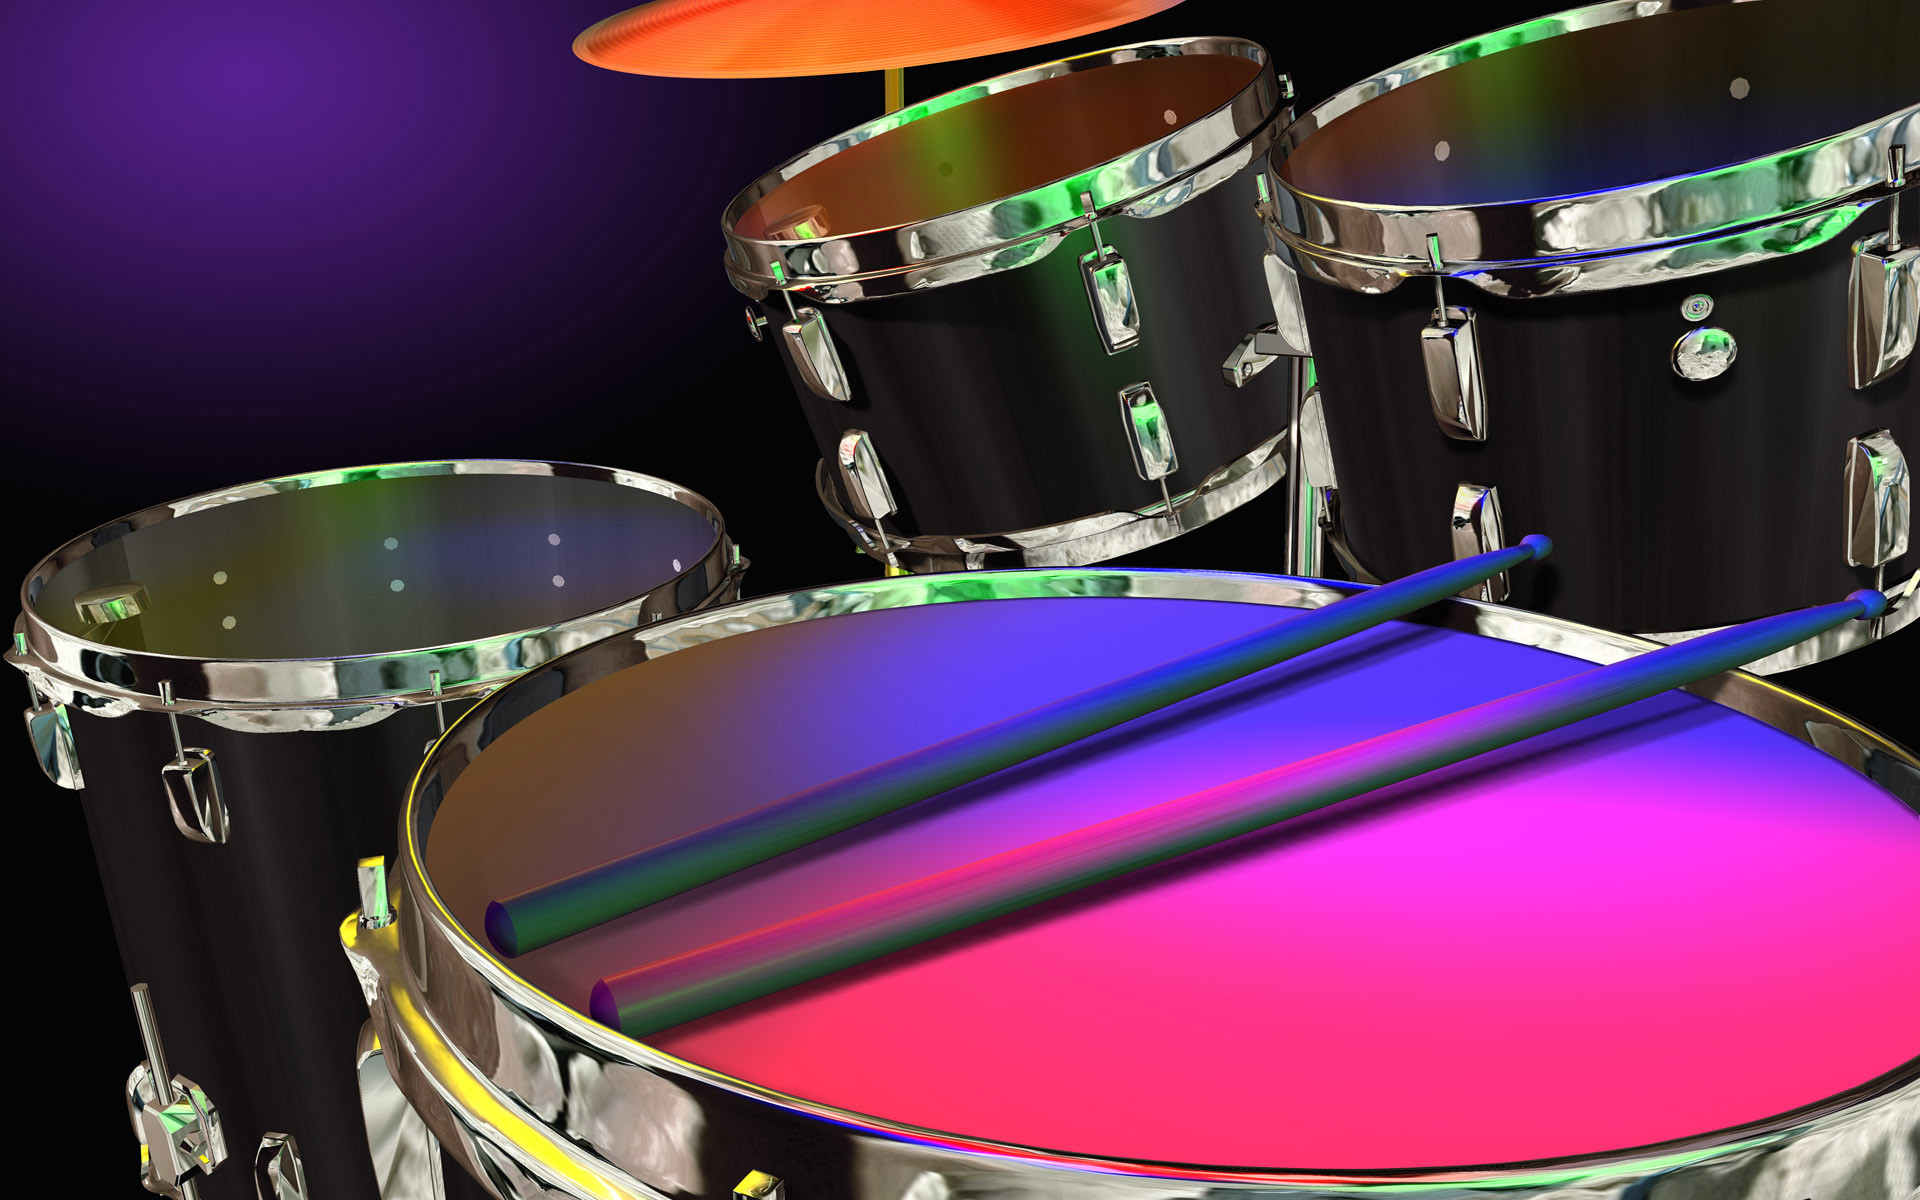 Drum Set Widescreen Computer Background 1215 1920x1200 px 1920x1200